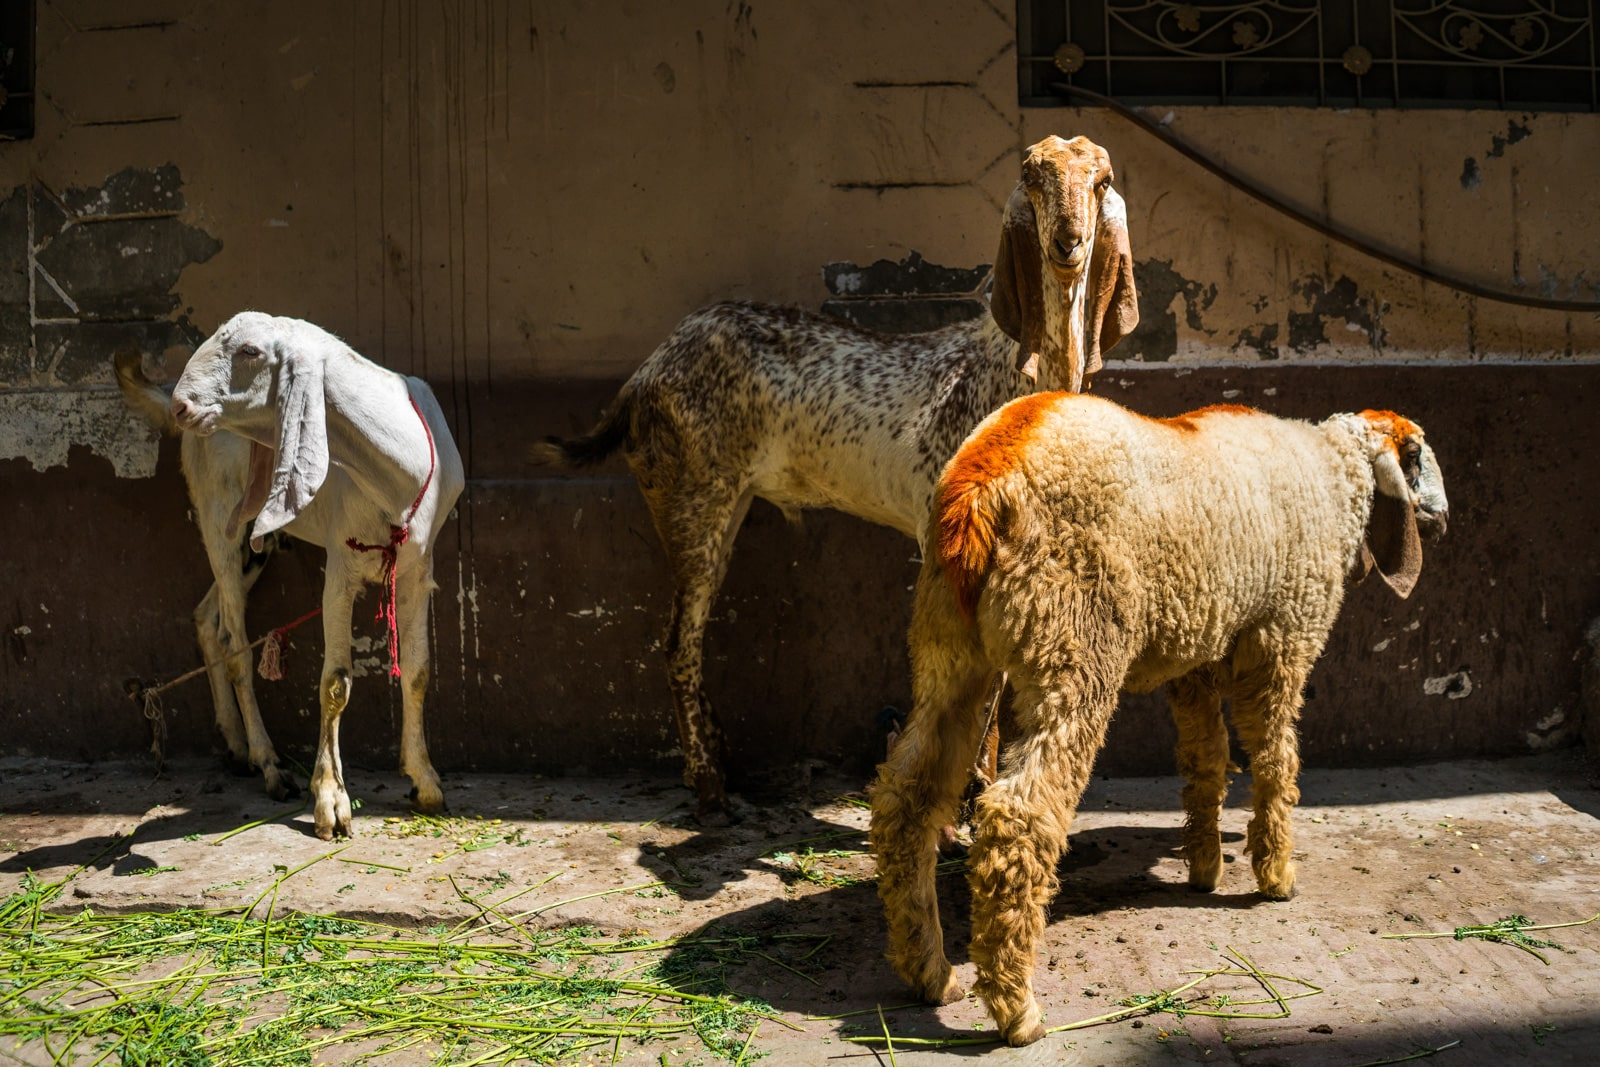 Celebrating Eid al-Adha in Lahore, Pakistan - Goats and sheep on the streets - Lost With Purpose travel blog